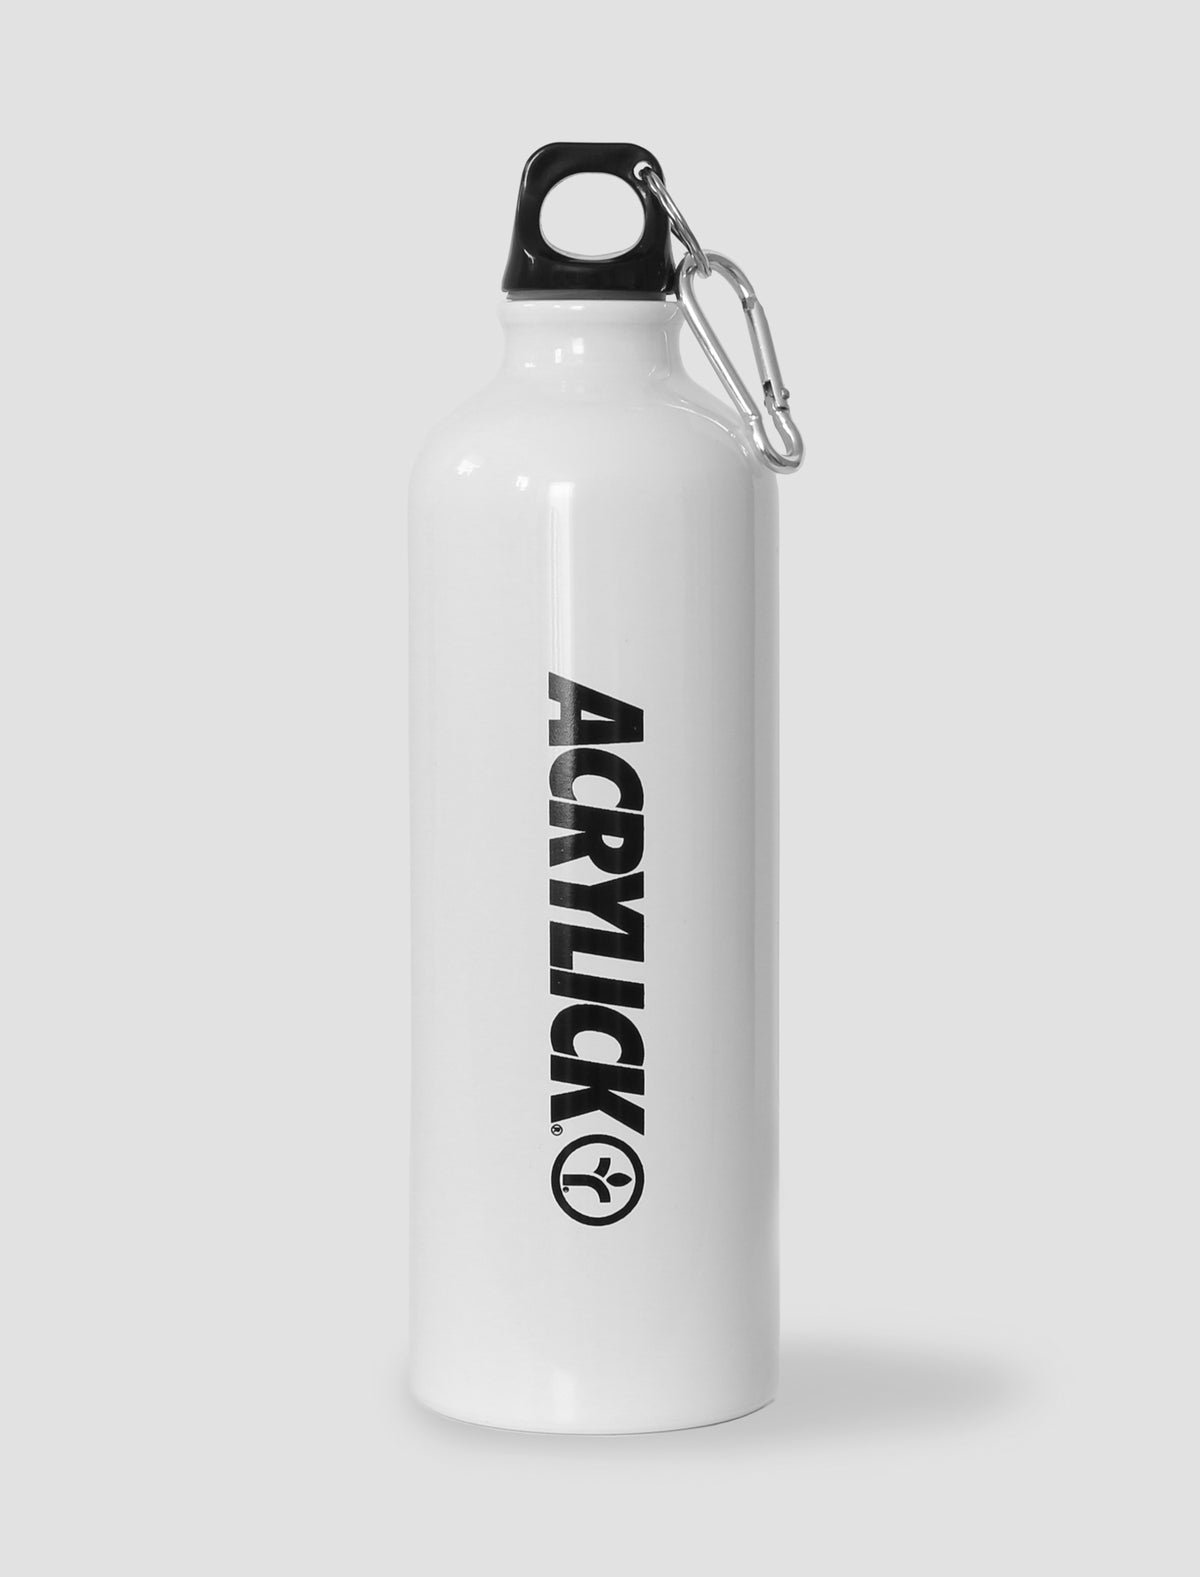 Acrylick Company - Aluminum water bottle 26 oz sport